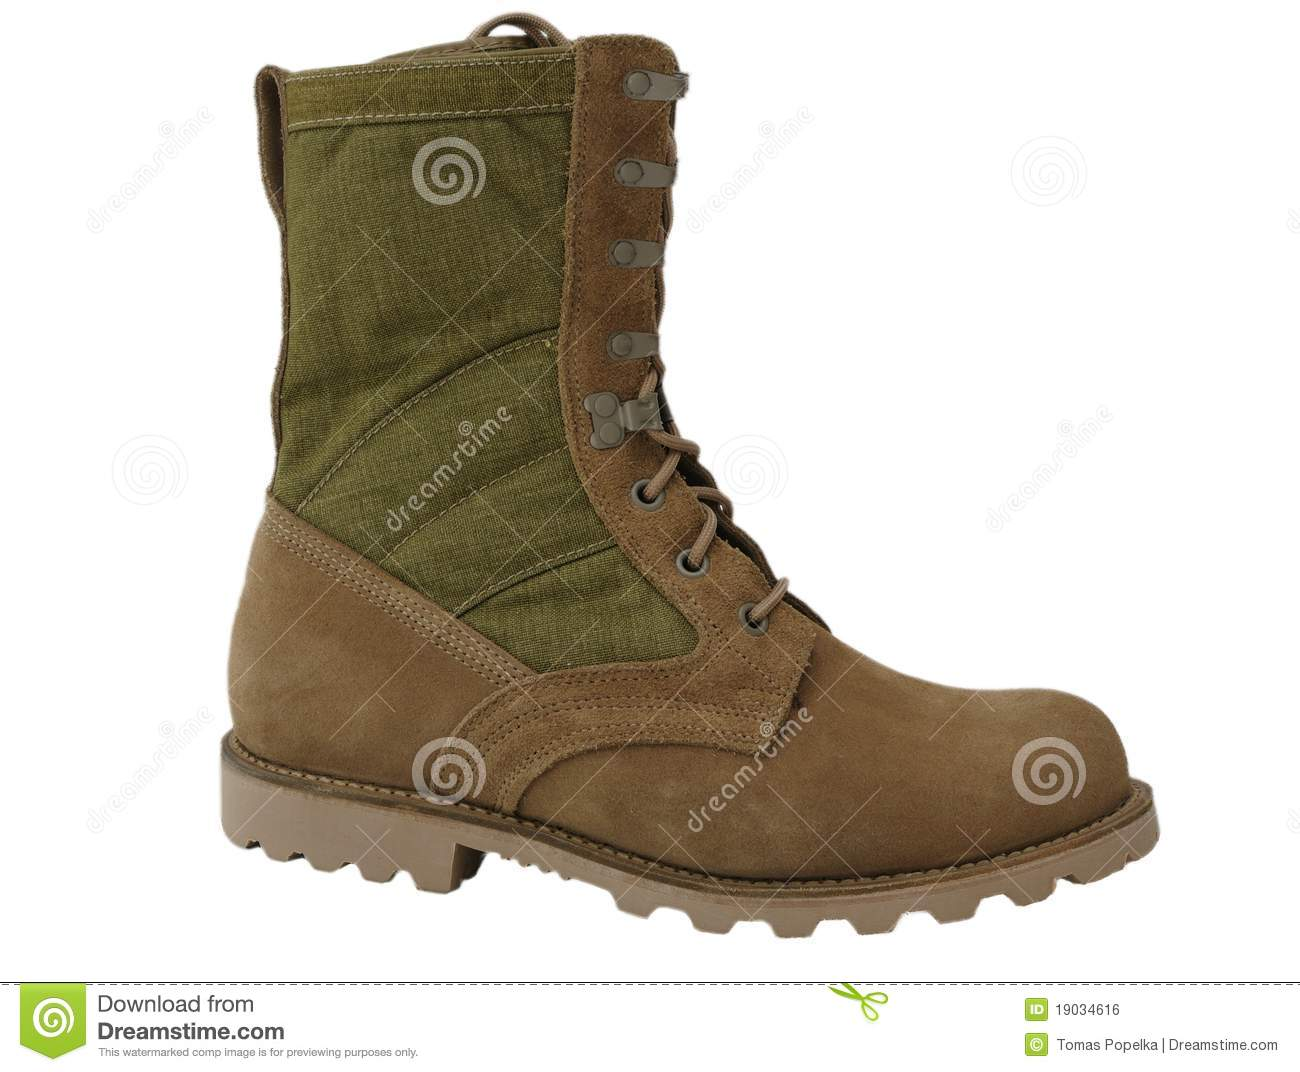 17a9f0c4934 Military Desert Combat Boots Stock Photo - Image of occupation, iraq ...